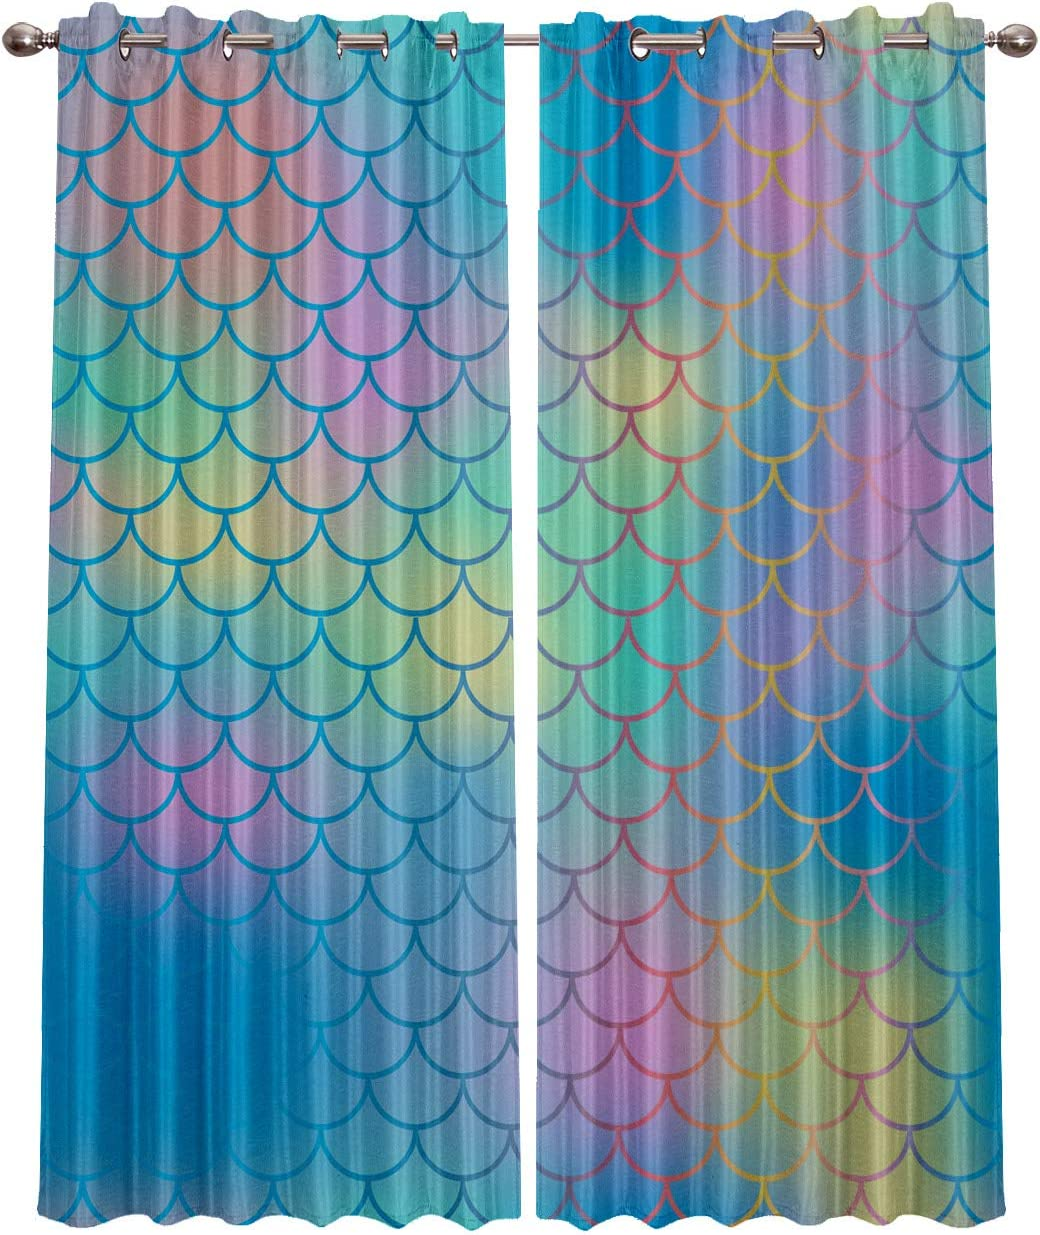 Rocking Giraffe Blackout Grommet Curtains for Living Room Fish Scale Mermaid Home Decor Treatment Thermal Darkening Drapes Window Curtains for Bedroom 2 Panels, 40 x 63 Inch Each Panel